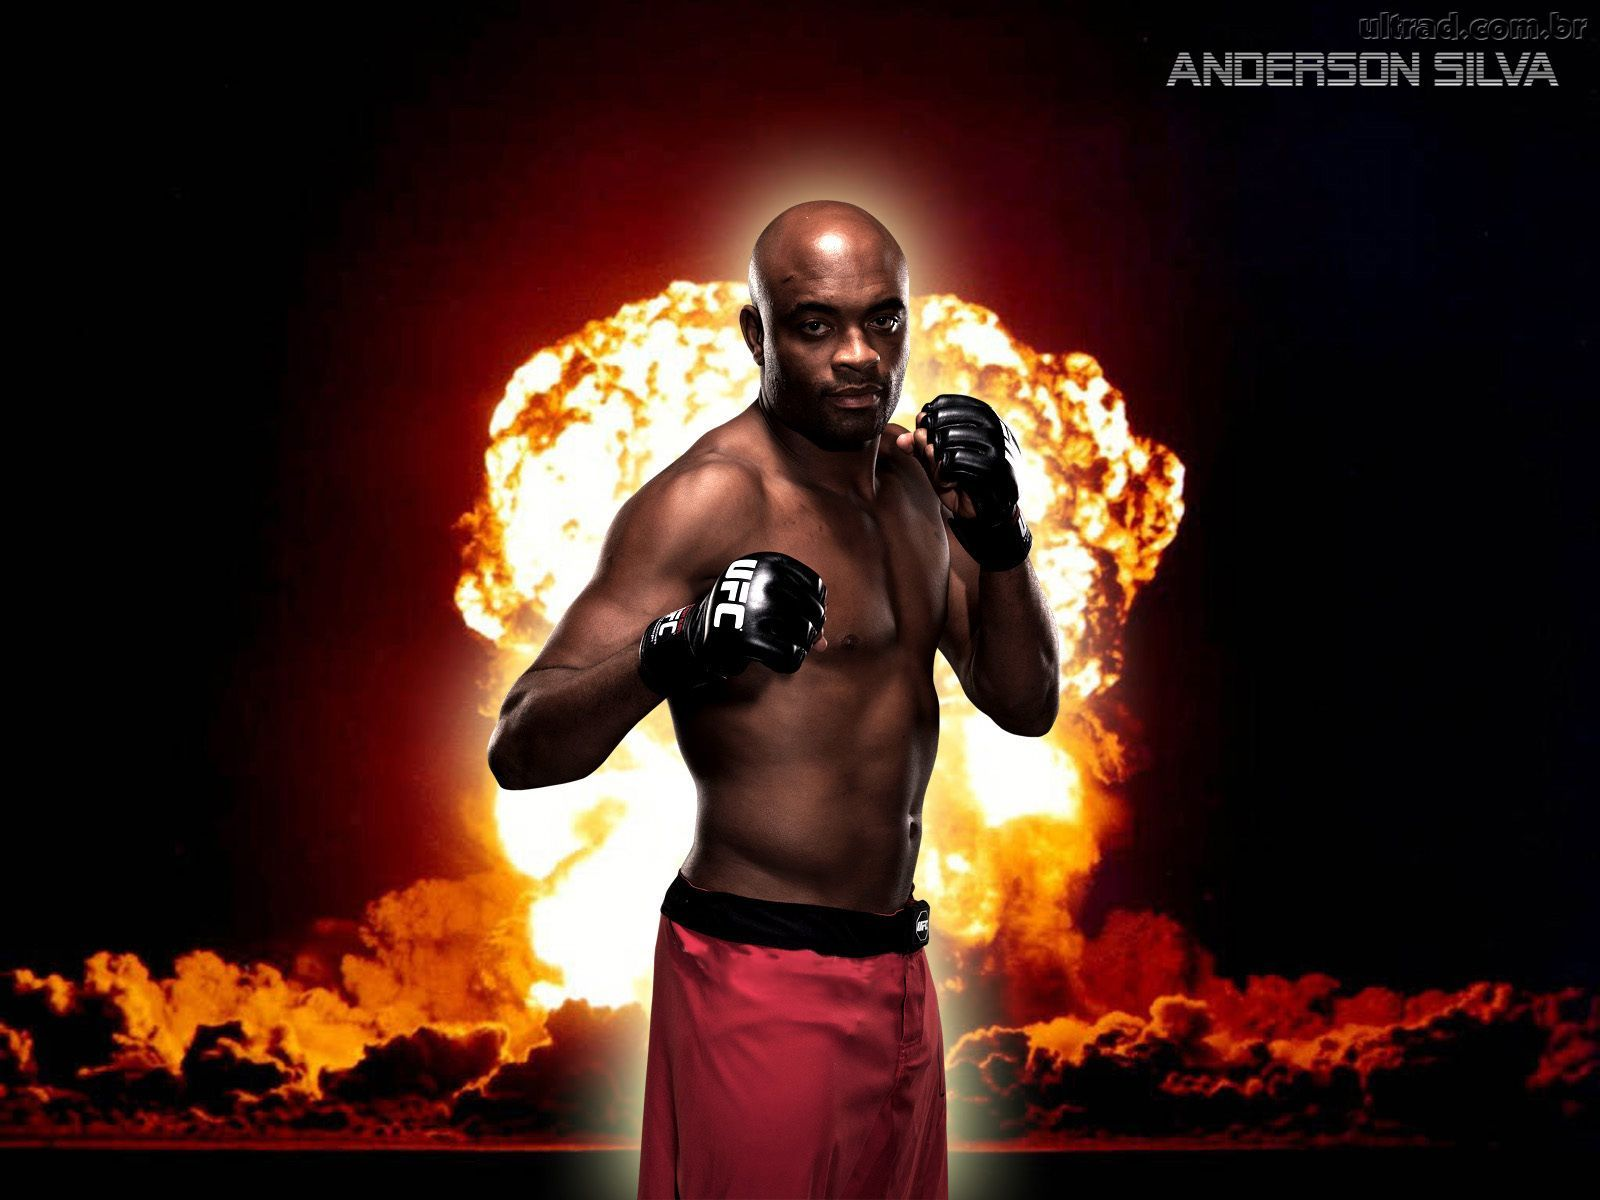 Anderson silva ufc high definition ultra wallpapers http anderson silva ufc high definition ultra wallpapers httpwallucky voltagebd Image collections